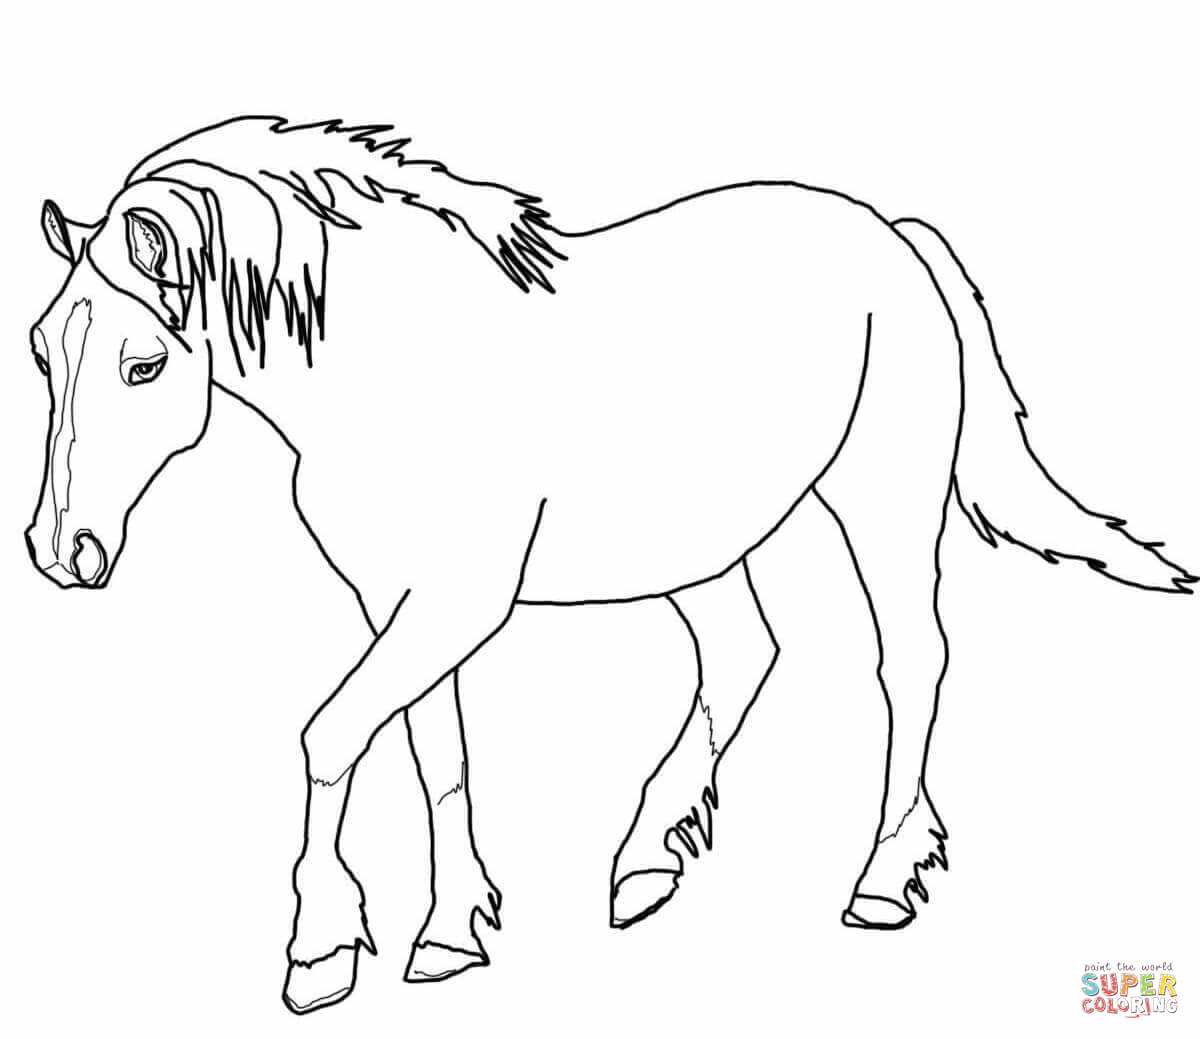 miniature horse coloring pages running arabian horse coloring page free printable coloring pages miniature horse